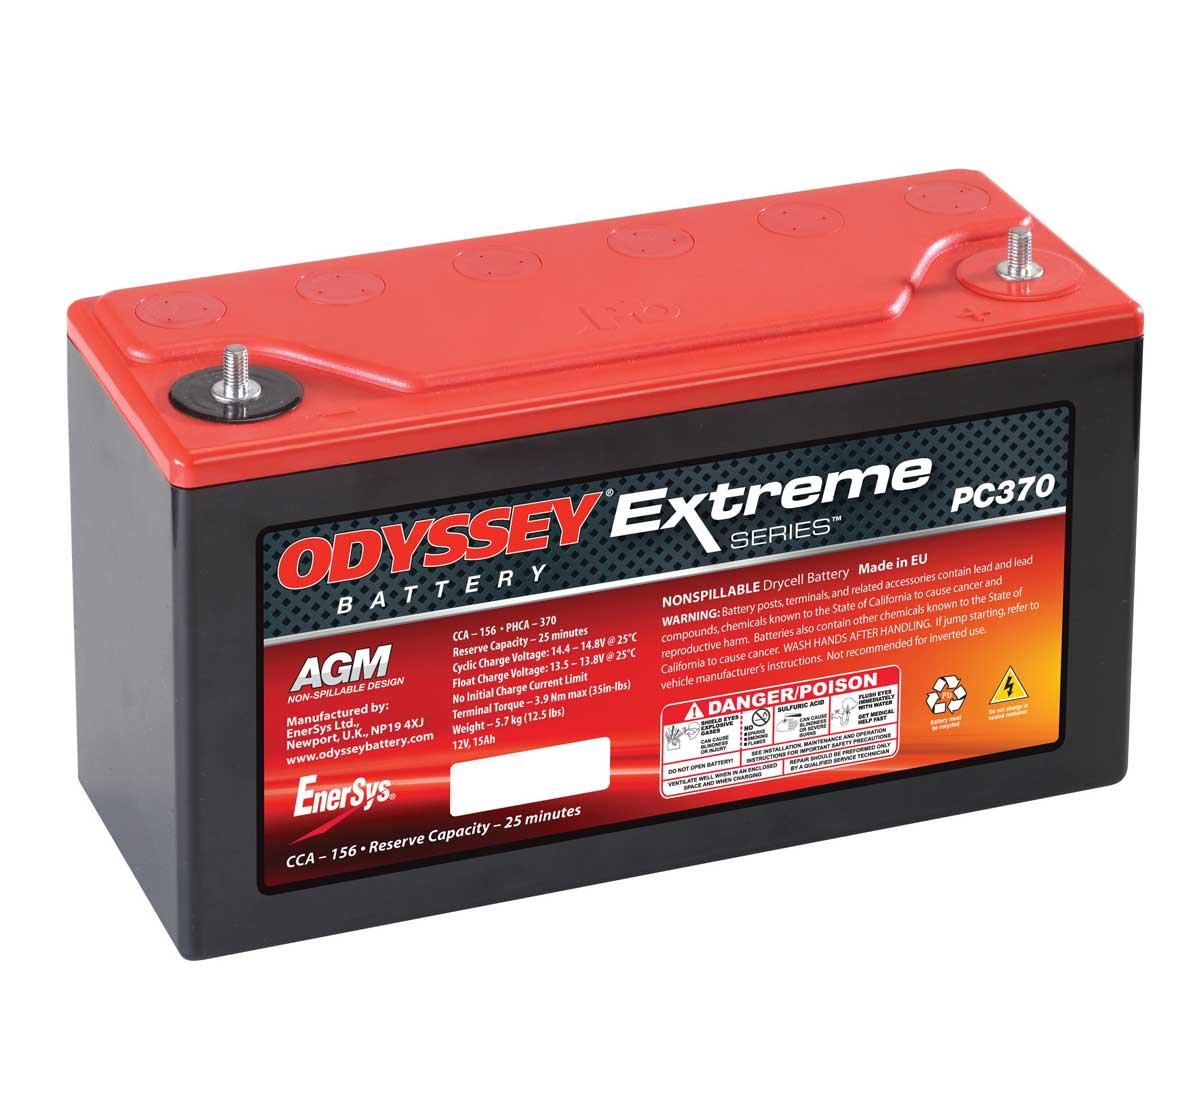 Odyssey PC370 Extreme Racing 15 Starter Battery